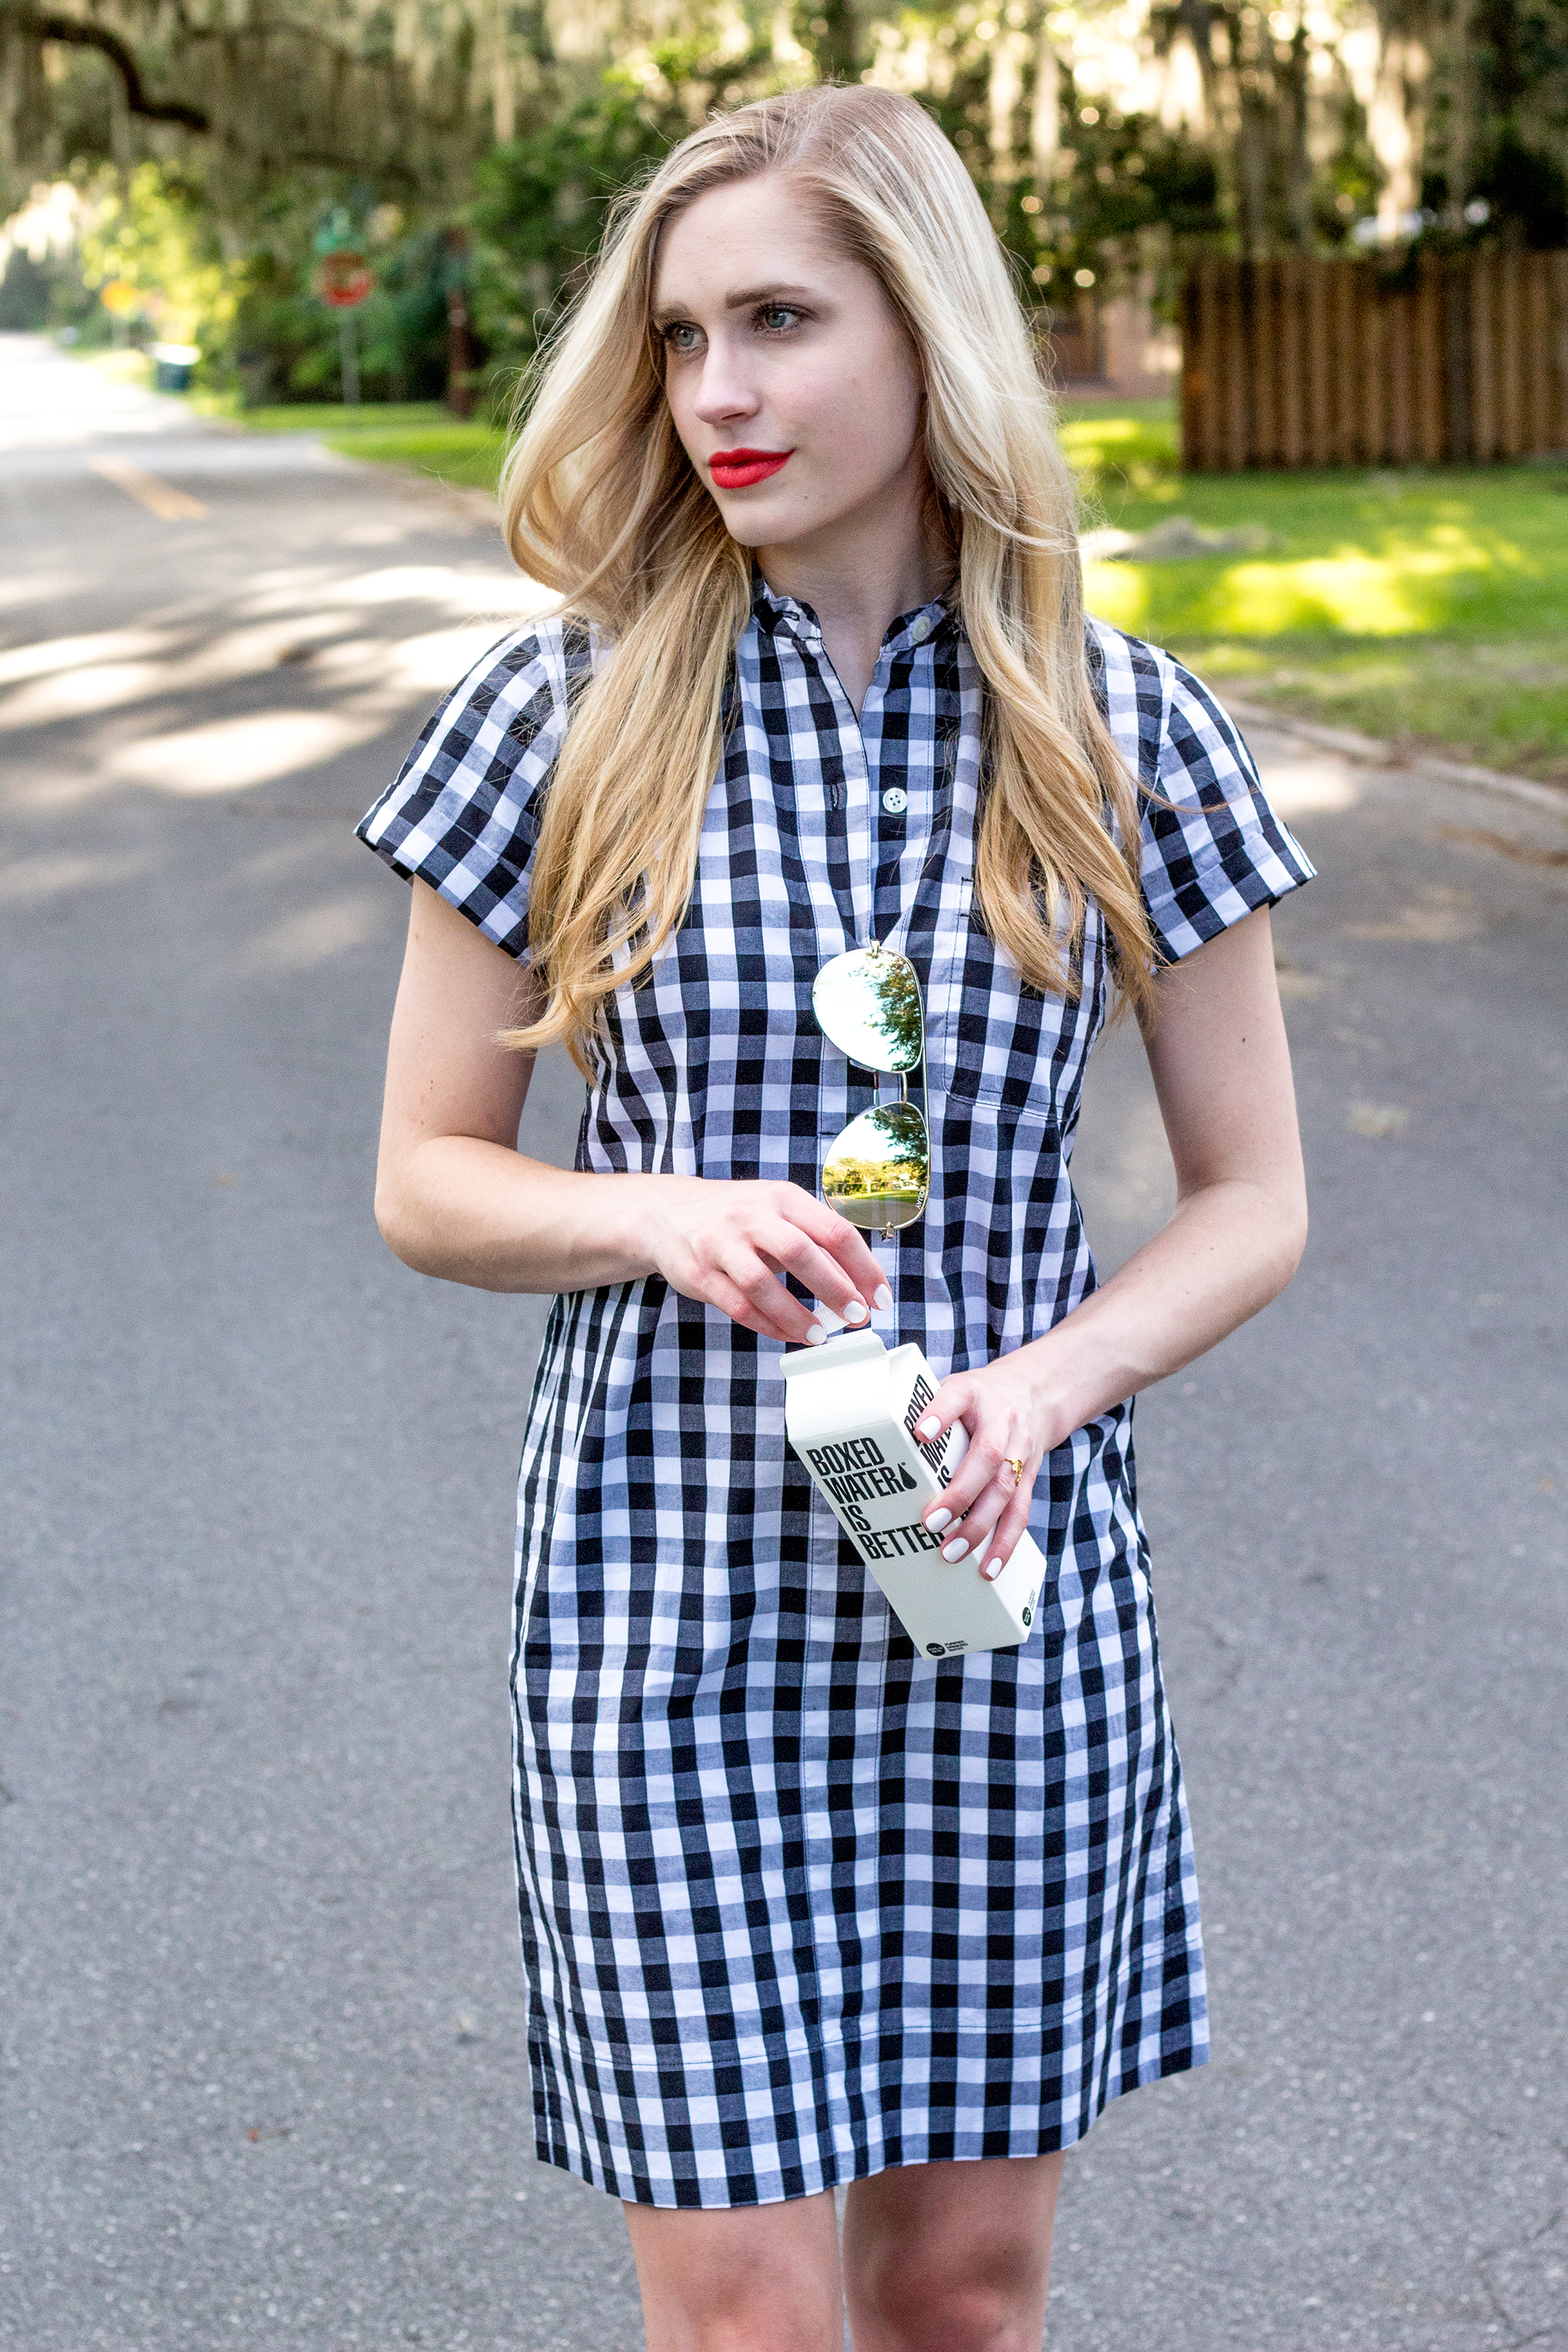 jcrew-j.crew-boxed-water-gingham-black-and-white-checkered-shirtdress-shirt-dress-ootd-styelled-elle-elisabeth-fashion-style-blogger-wiw-adidas-superstar-quay-australia-desi-perkins-06